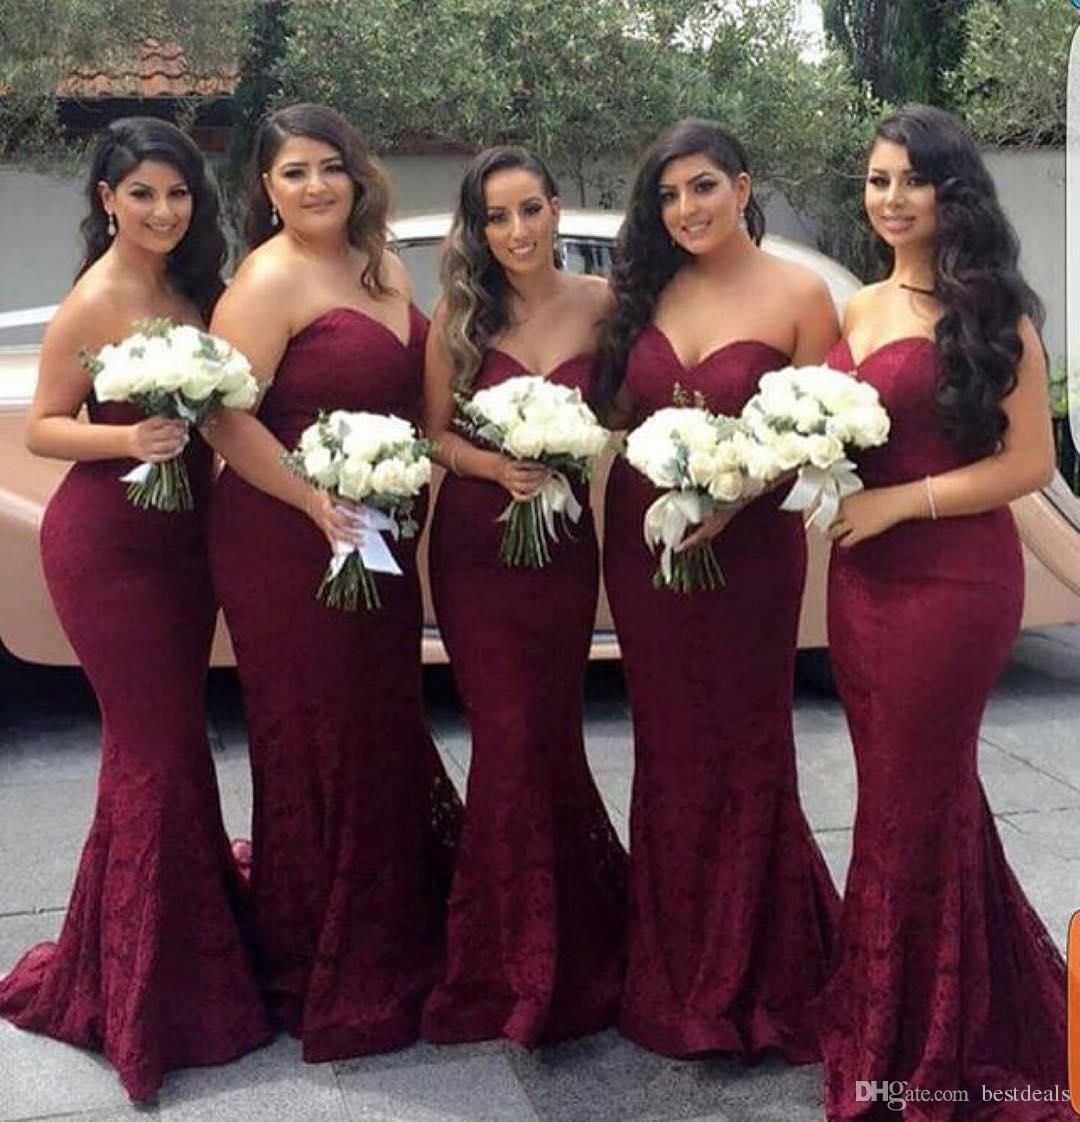 Elegant burgundy sweetheart lace mermaid cheap long bridesmaid elegant burgundy sweetheart lace mermaid cheap long bridesmaid dresses 2017 wine maid of honor wedding guest dress prom party gowns cheap bridesmaid dresses ombrellifo Choice Image